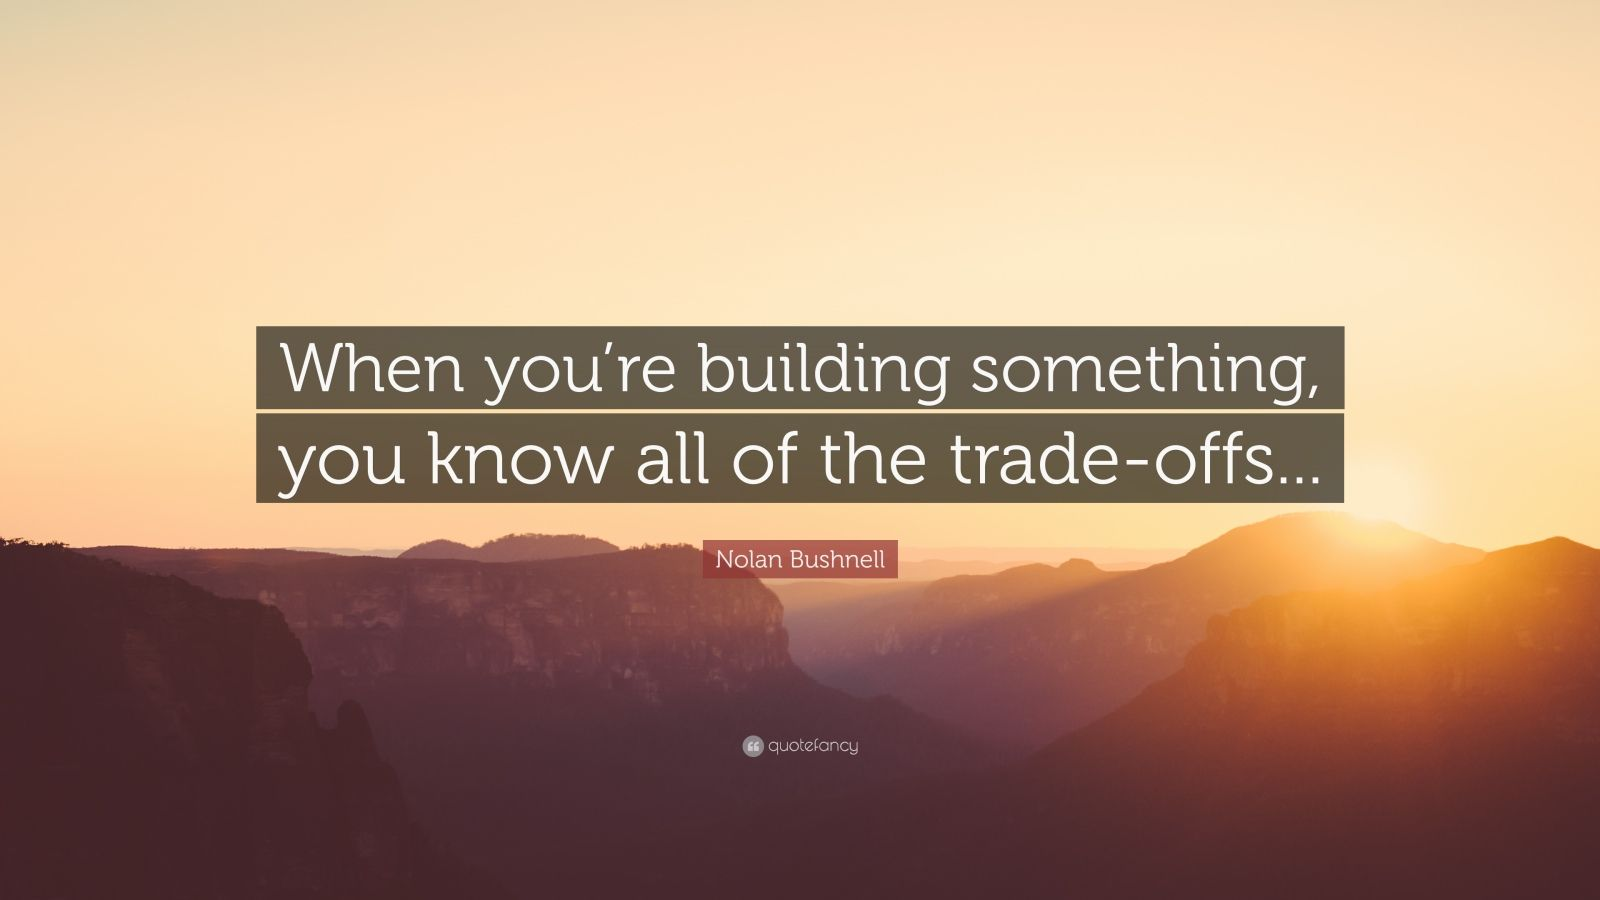 """Nolan Bushnell Quote: """"When you're building something, you know all of the trade-offs..."""""""